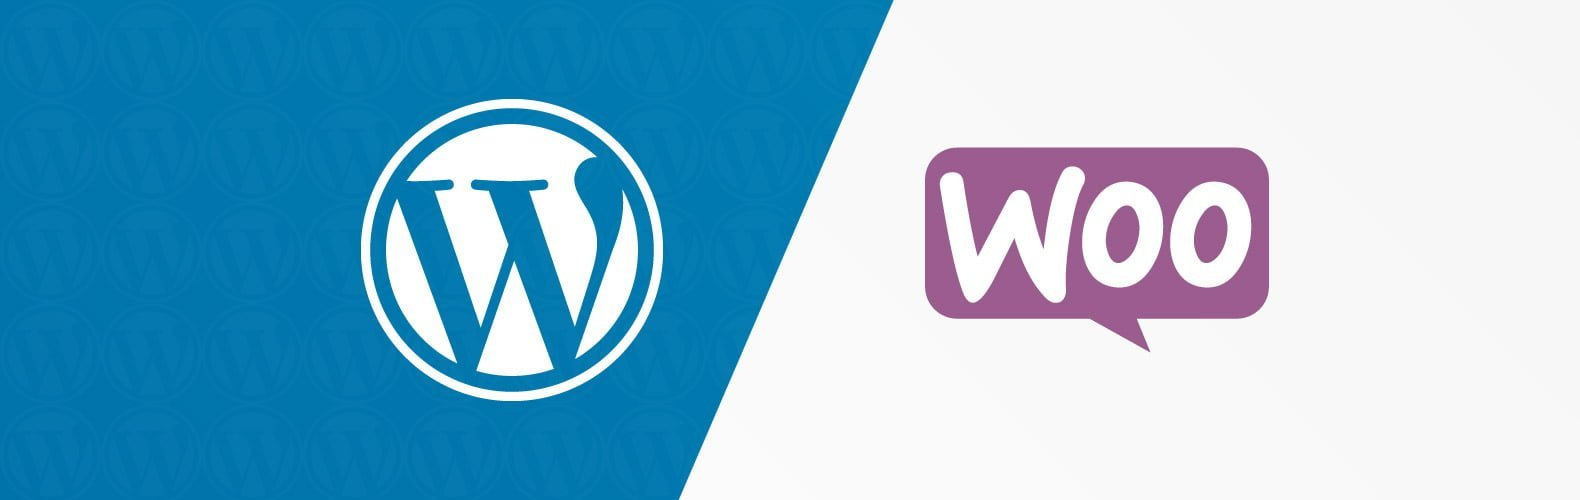 Woocommerce Plugin by plural.software